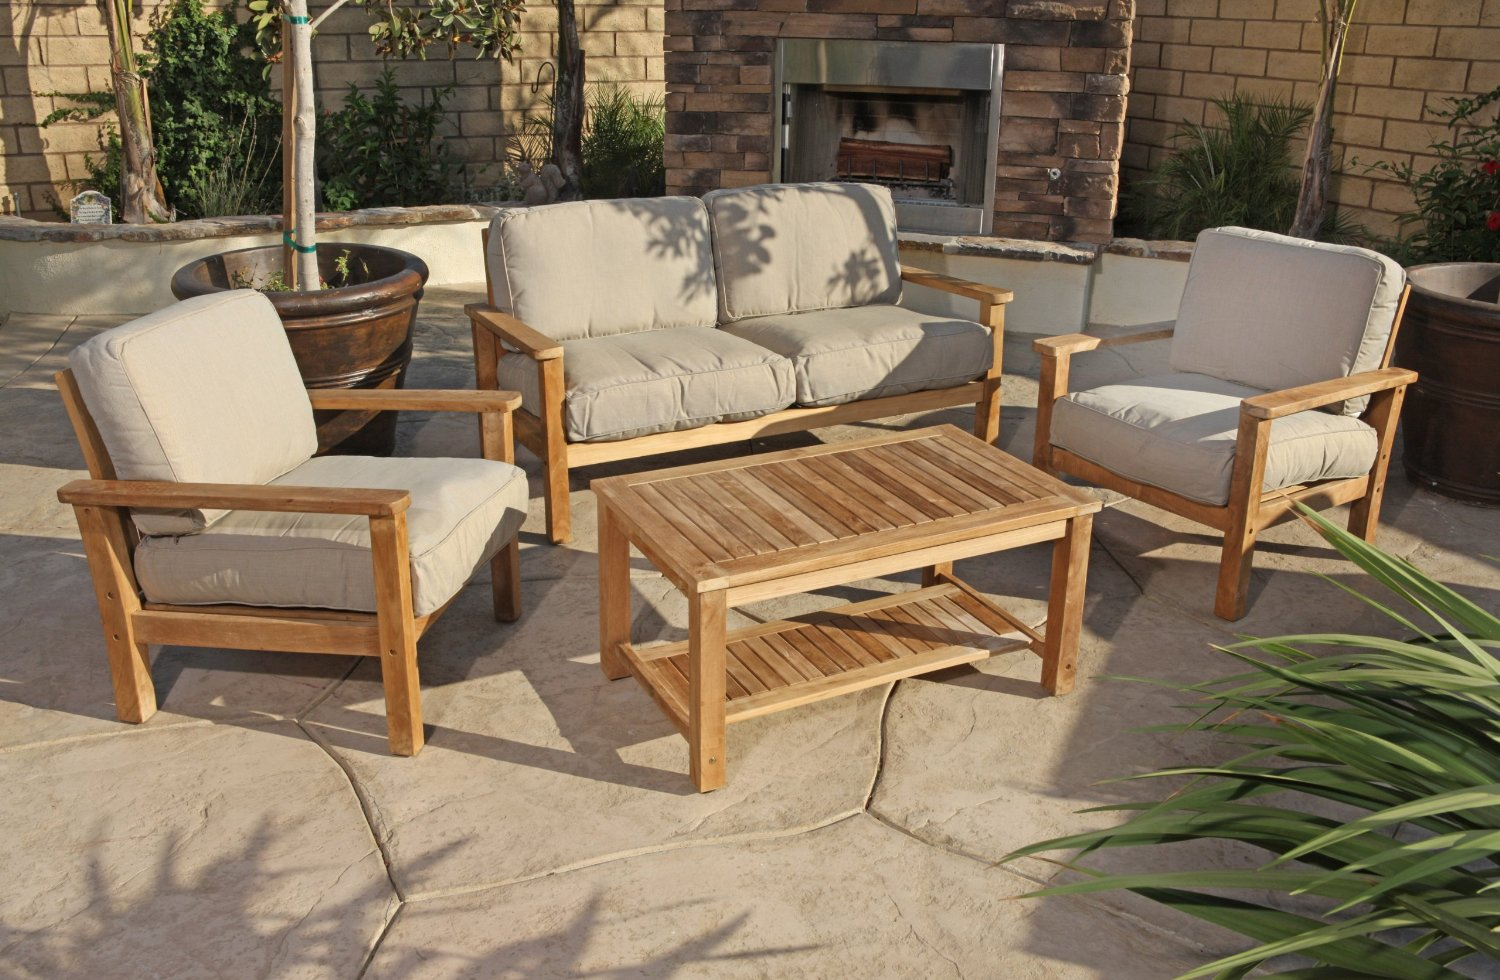 Outdoor Couch Modern Wicker Sectional Outdoor Sofa Sets Teak Outdoor Sofa